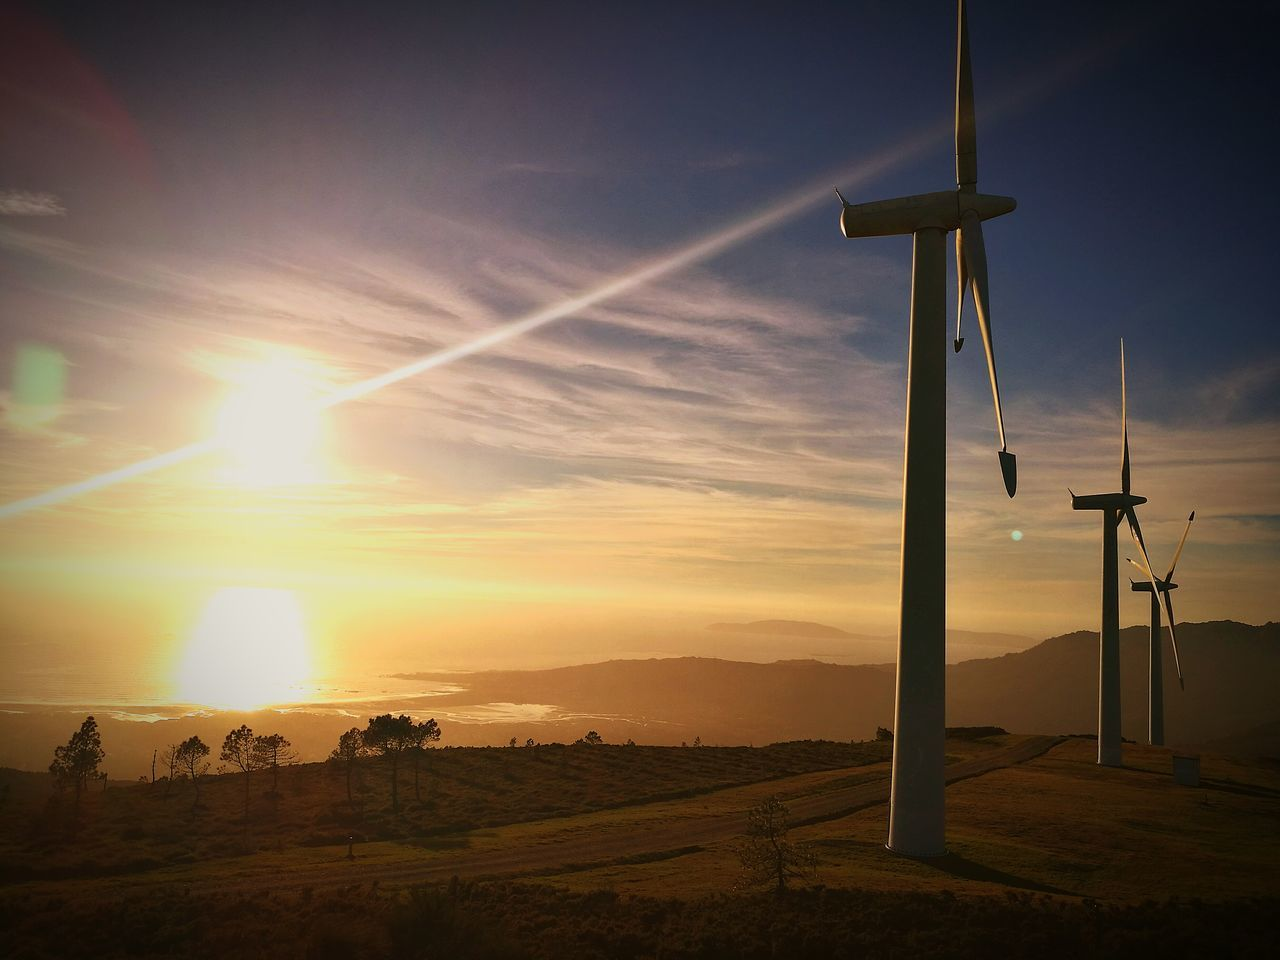 alternative energy, environmental conservation, sunset, fuel and power generation, wind power, wind turbine, renewable energy, field, sun, windmill, nature, sky, beauty in nature, no people, landscape, tranquil scene, industrial windmill, scenics, tranquility, sunlight, silhouette, rural scene, outdoors, technology, electricity, grass, day